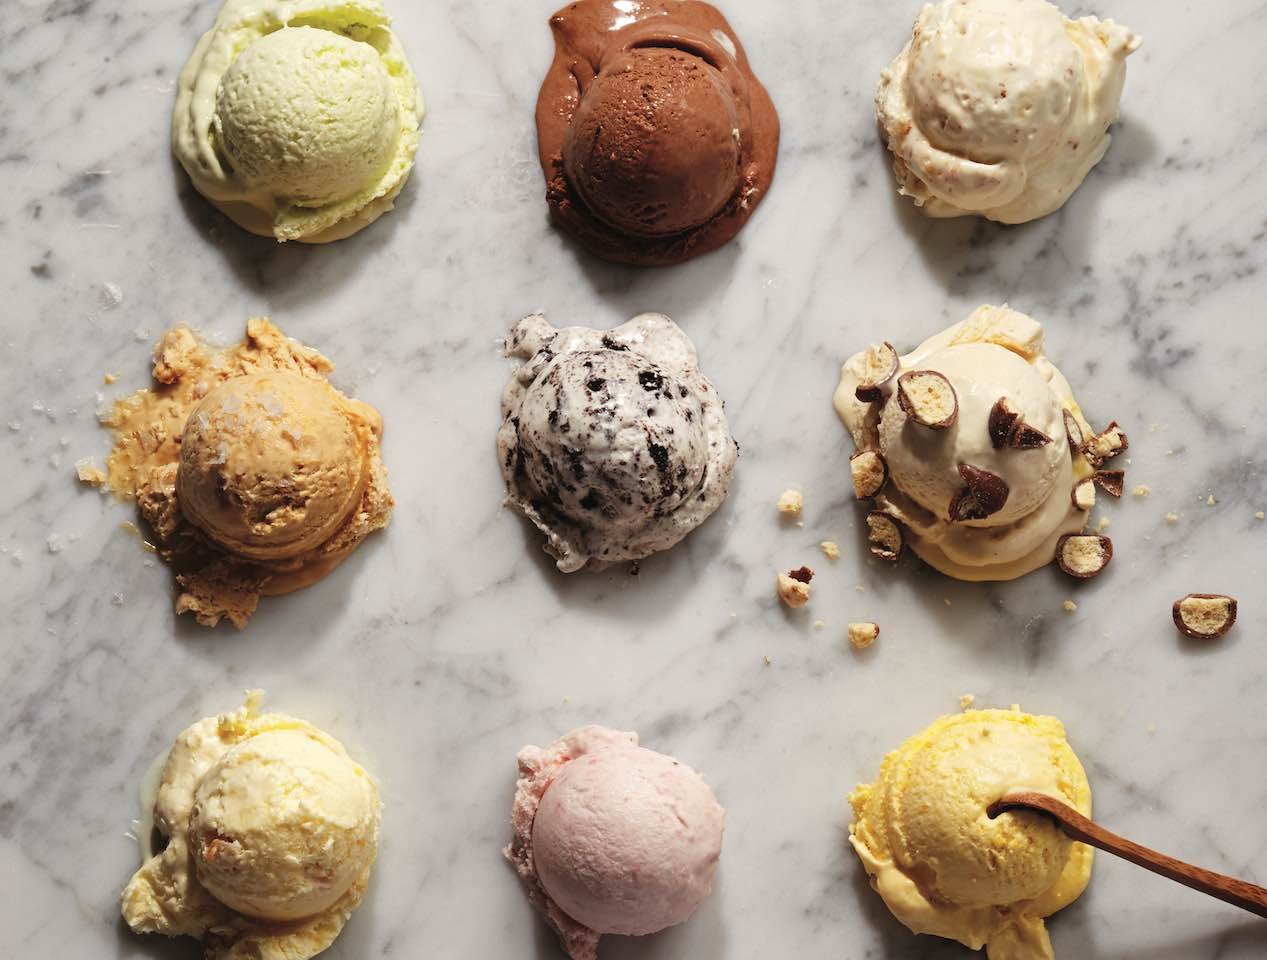 Nine ice cream scoops on marble table